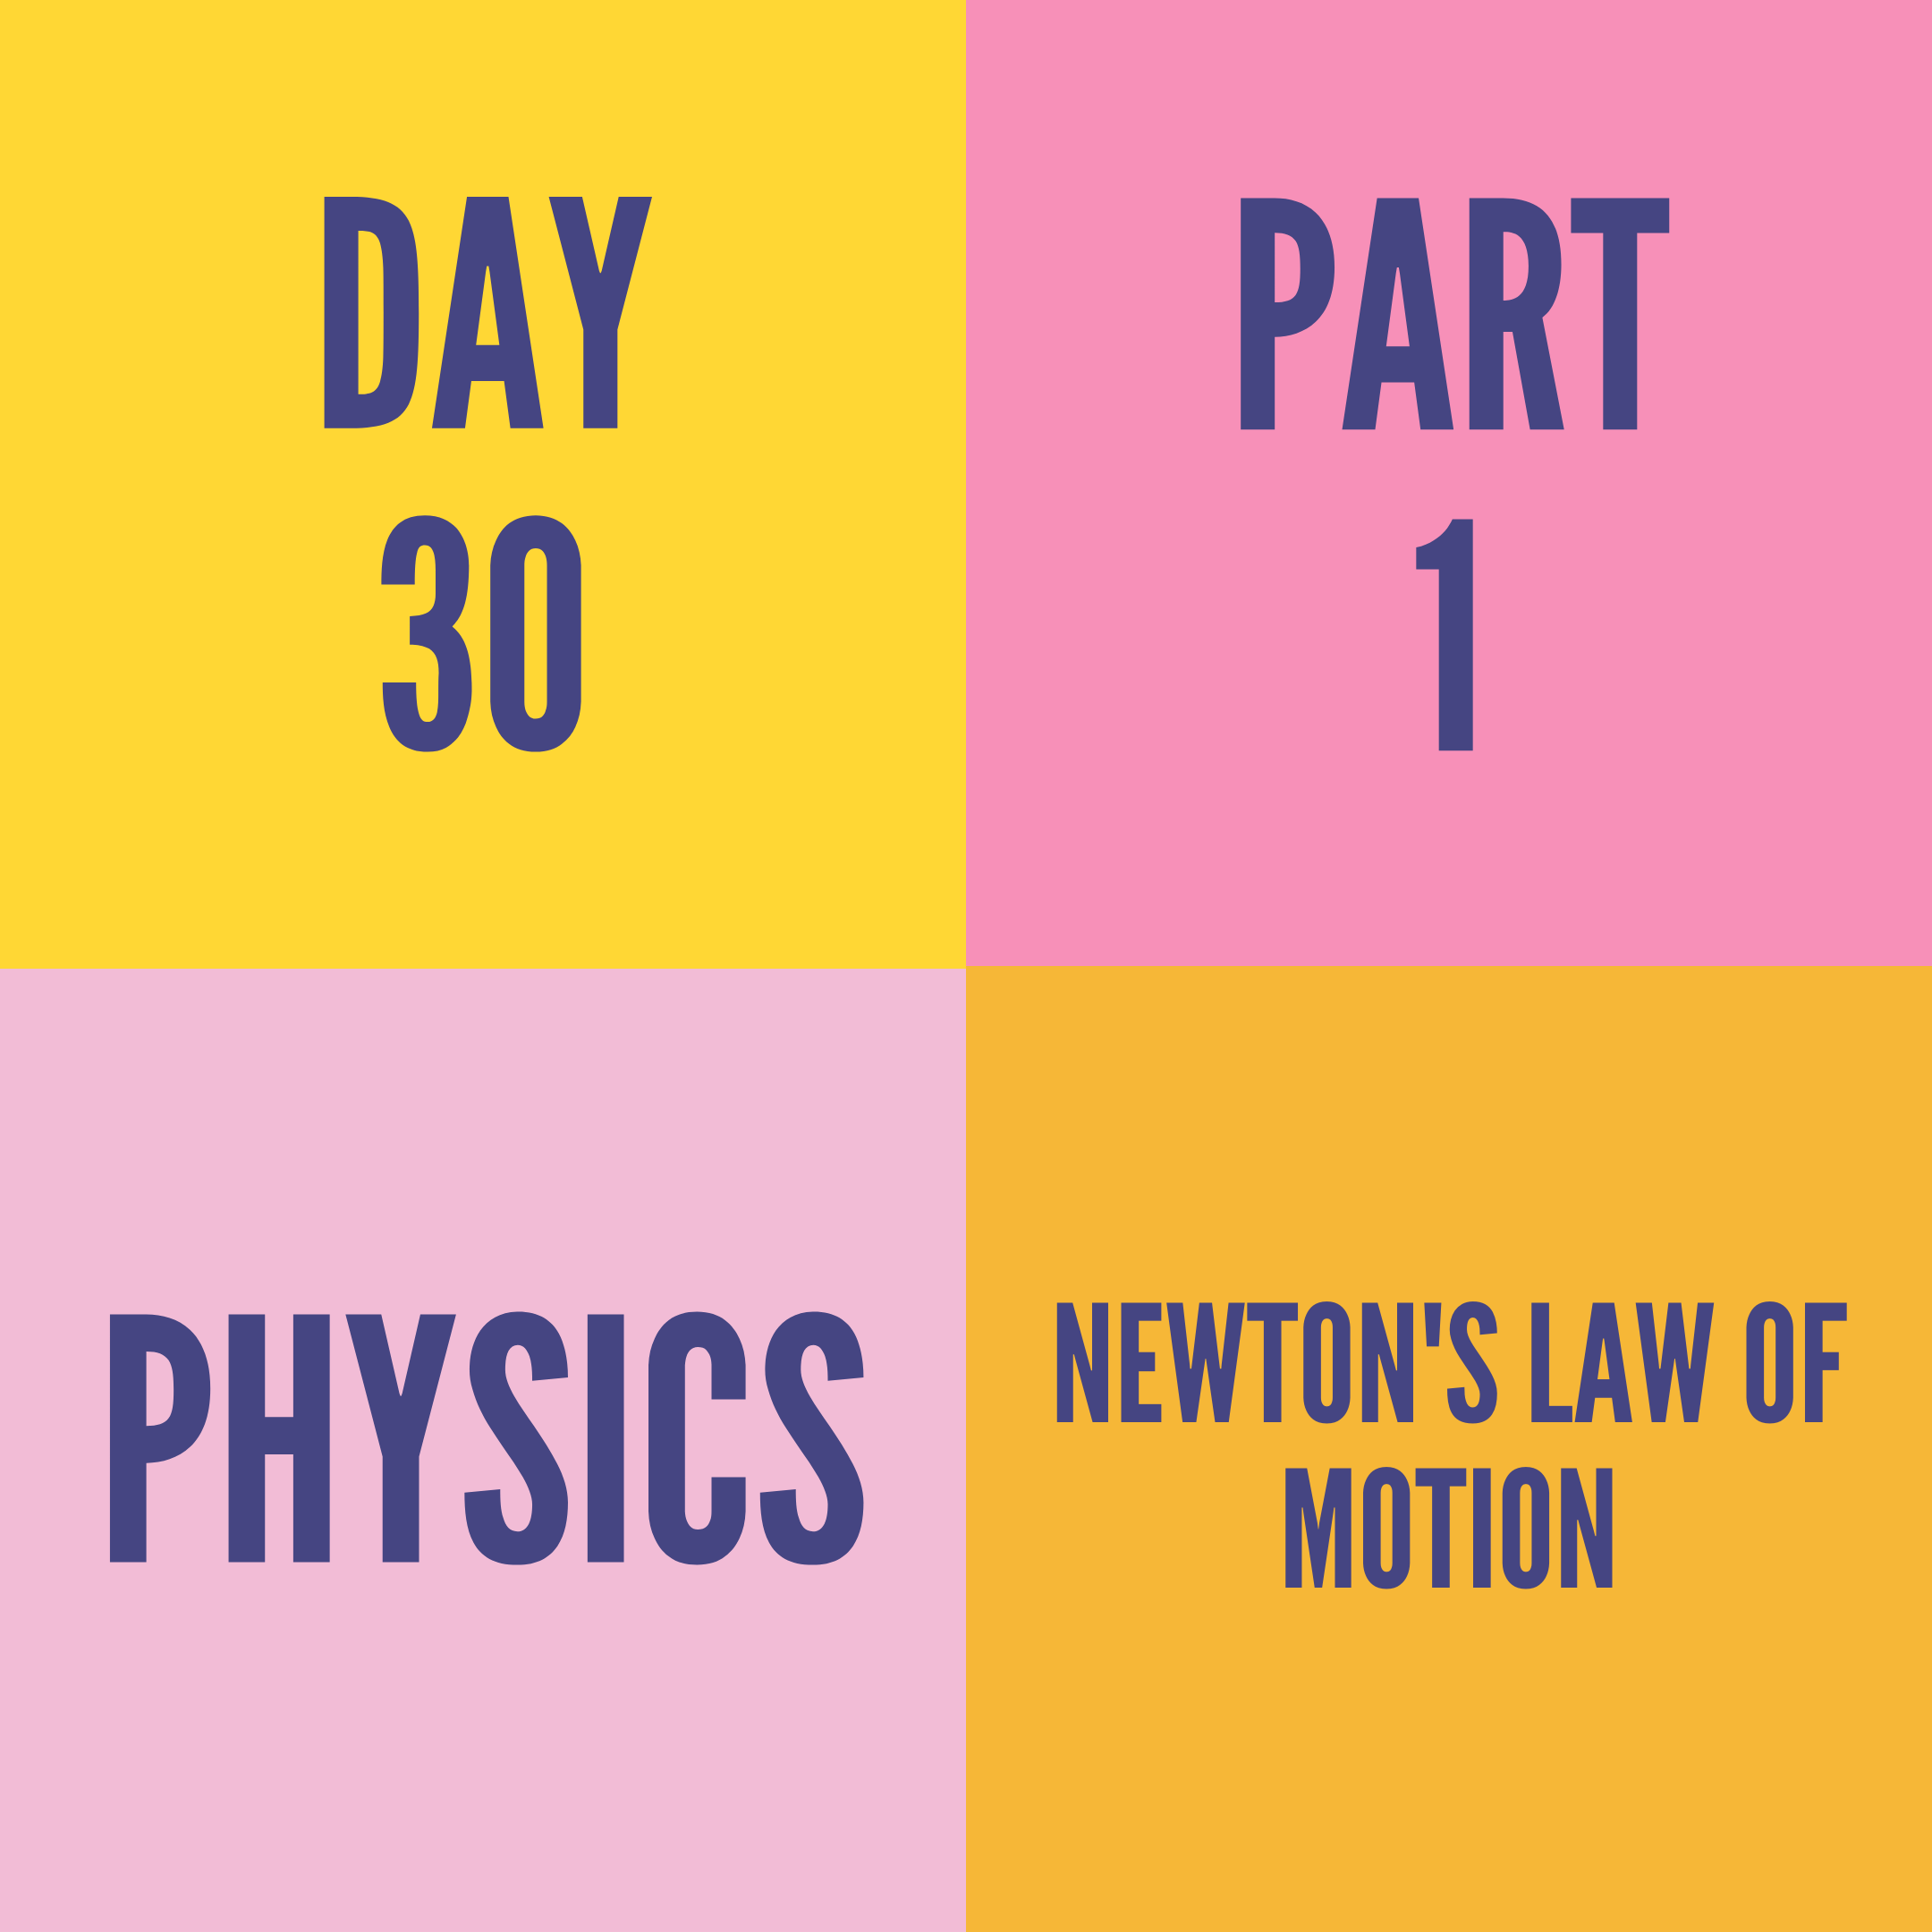 DAY-30 PART-1 NEWTON'S LAW OF MOTION